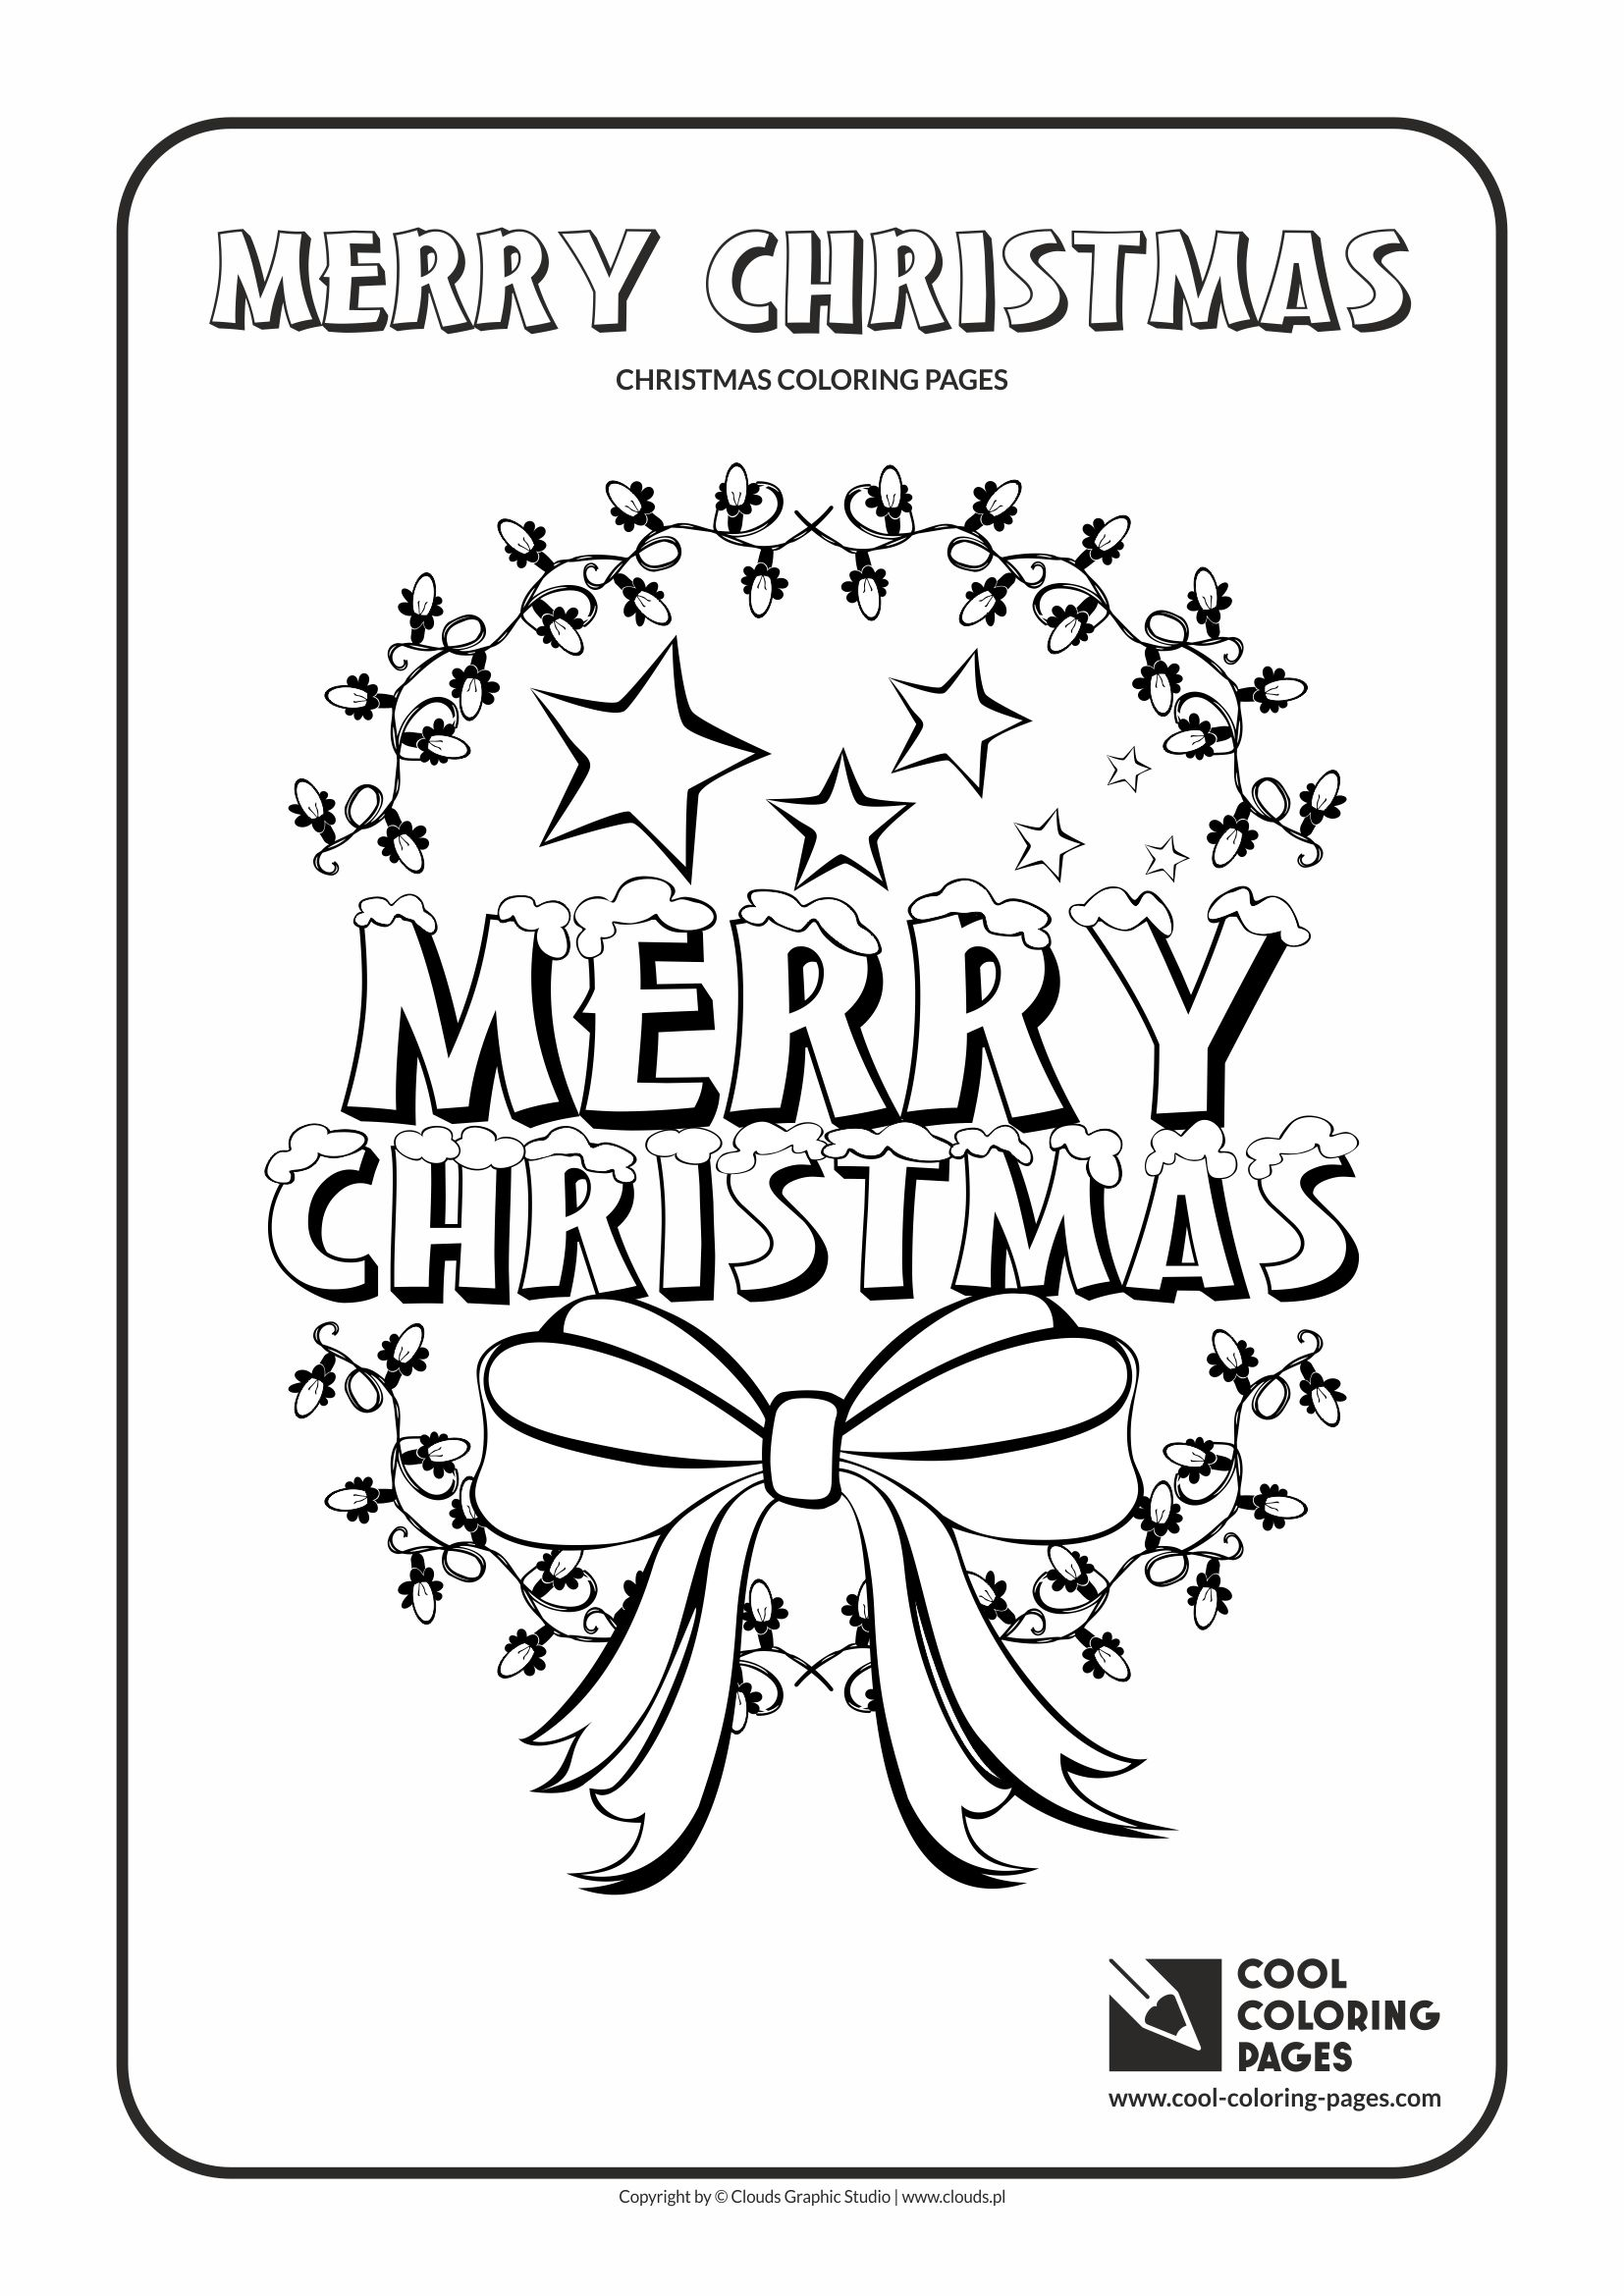 Merry Christmas No 2 Coloring Page Cool Coloring Pages